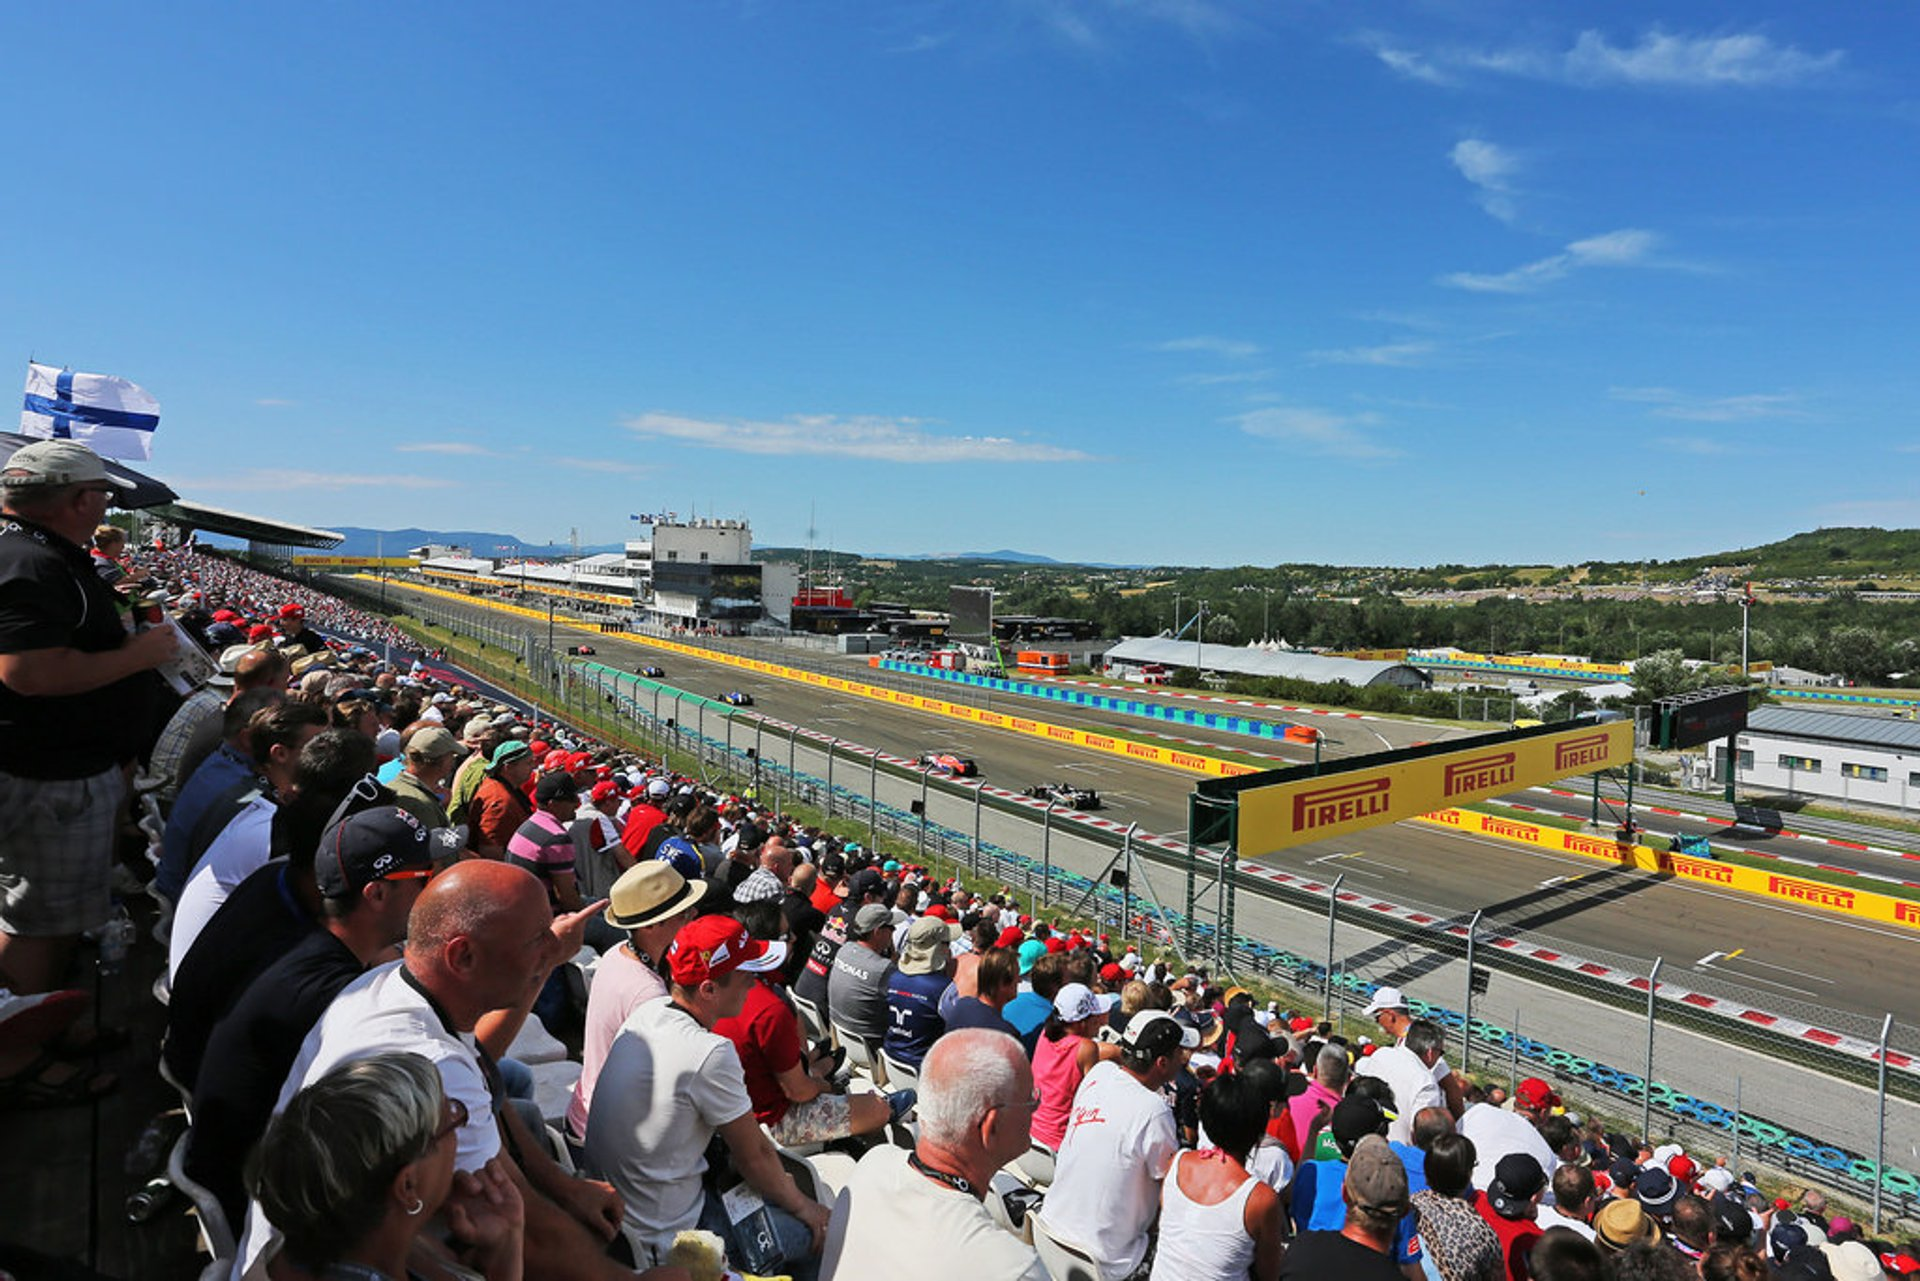 Hungarian F1 Grand Prix in Hungary - Best Season